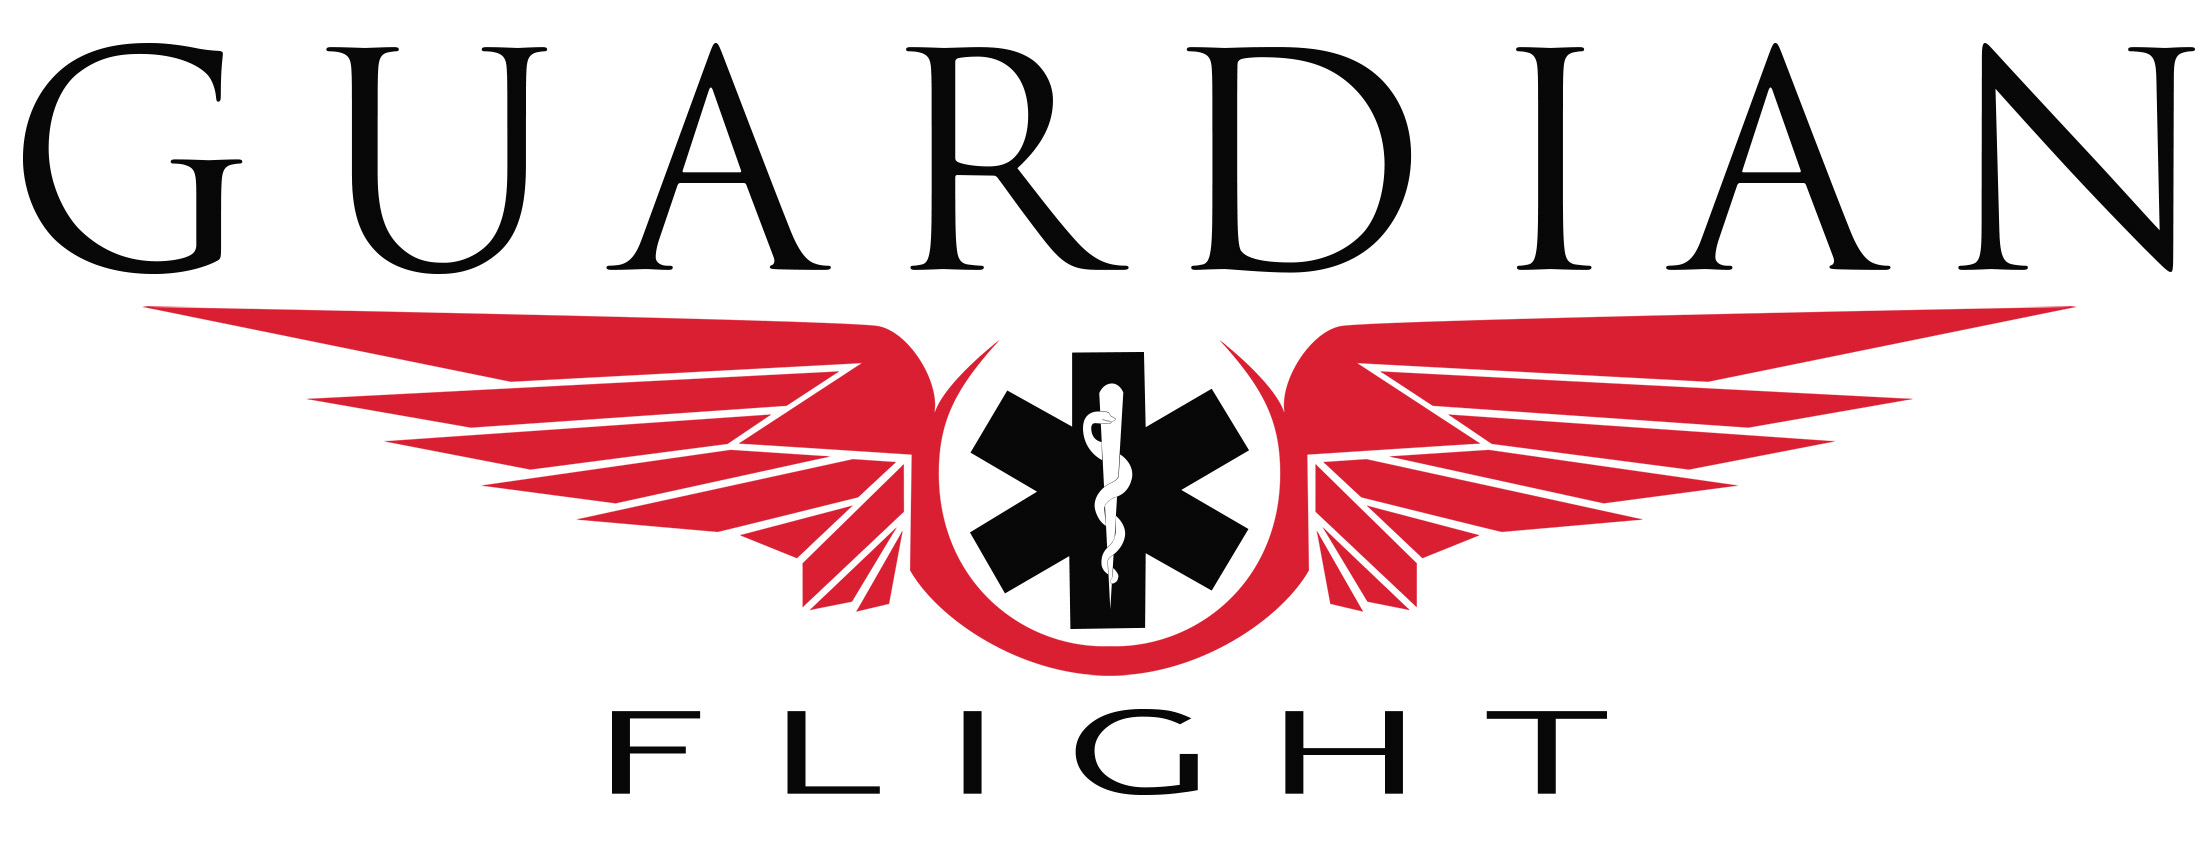 Guardianflightamgh Jobs 176 HELICOPTER BASE MECHANIC ENTRY